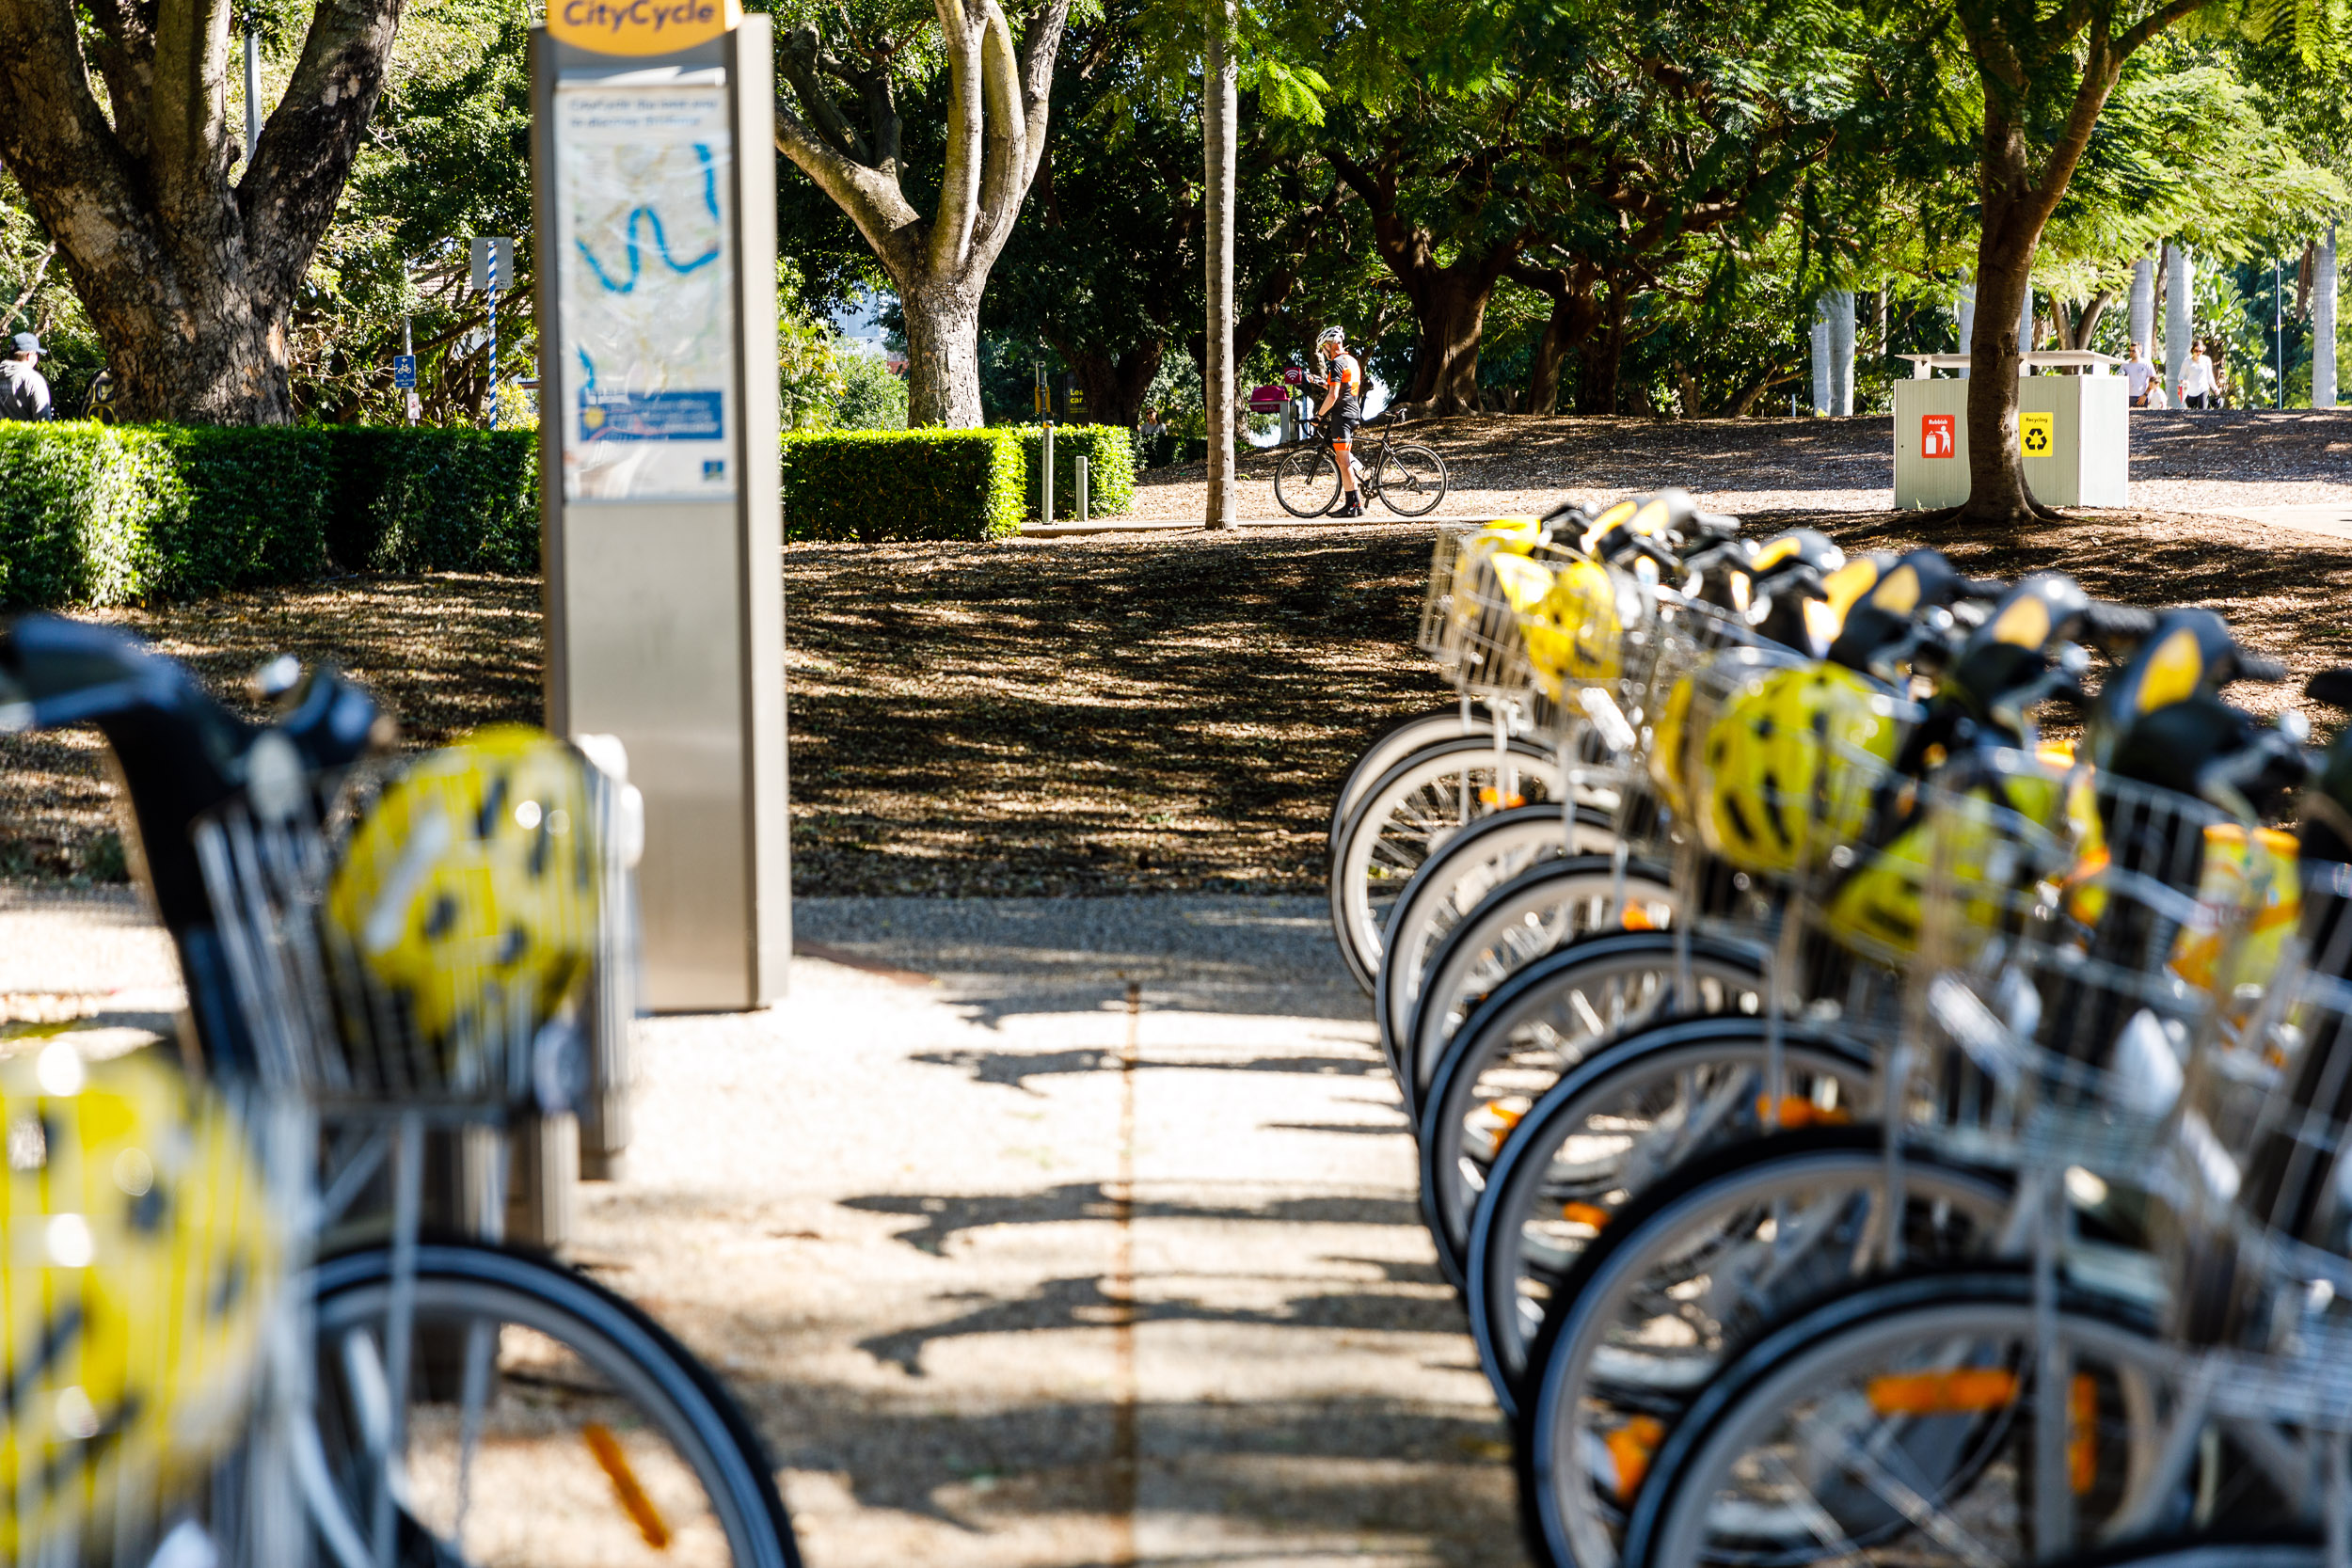 City Cycle Bikes (New Farm Park)